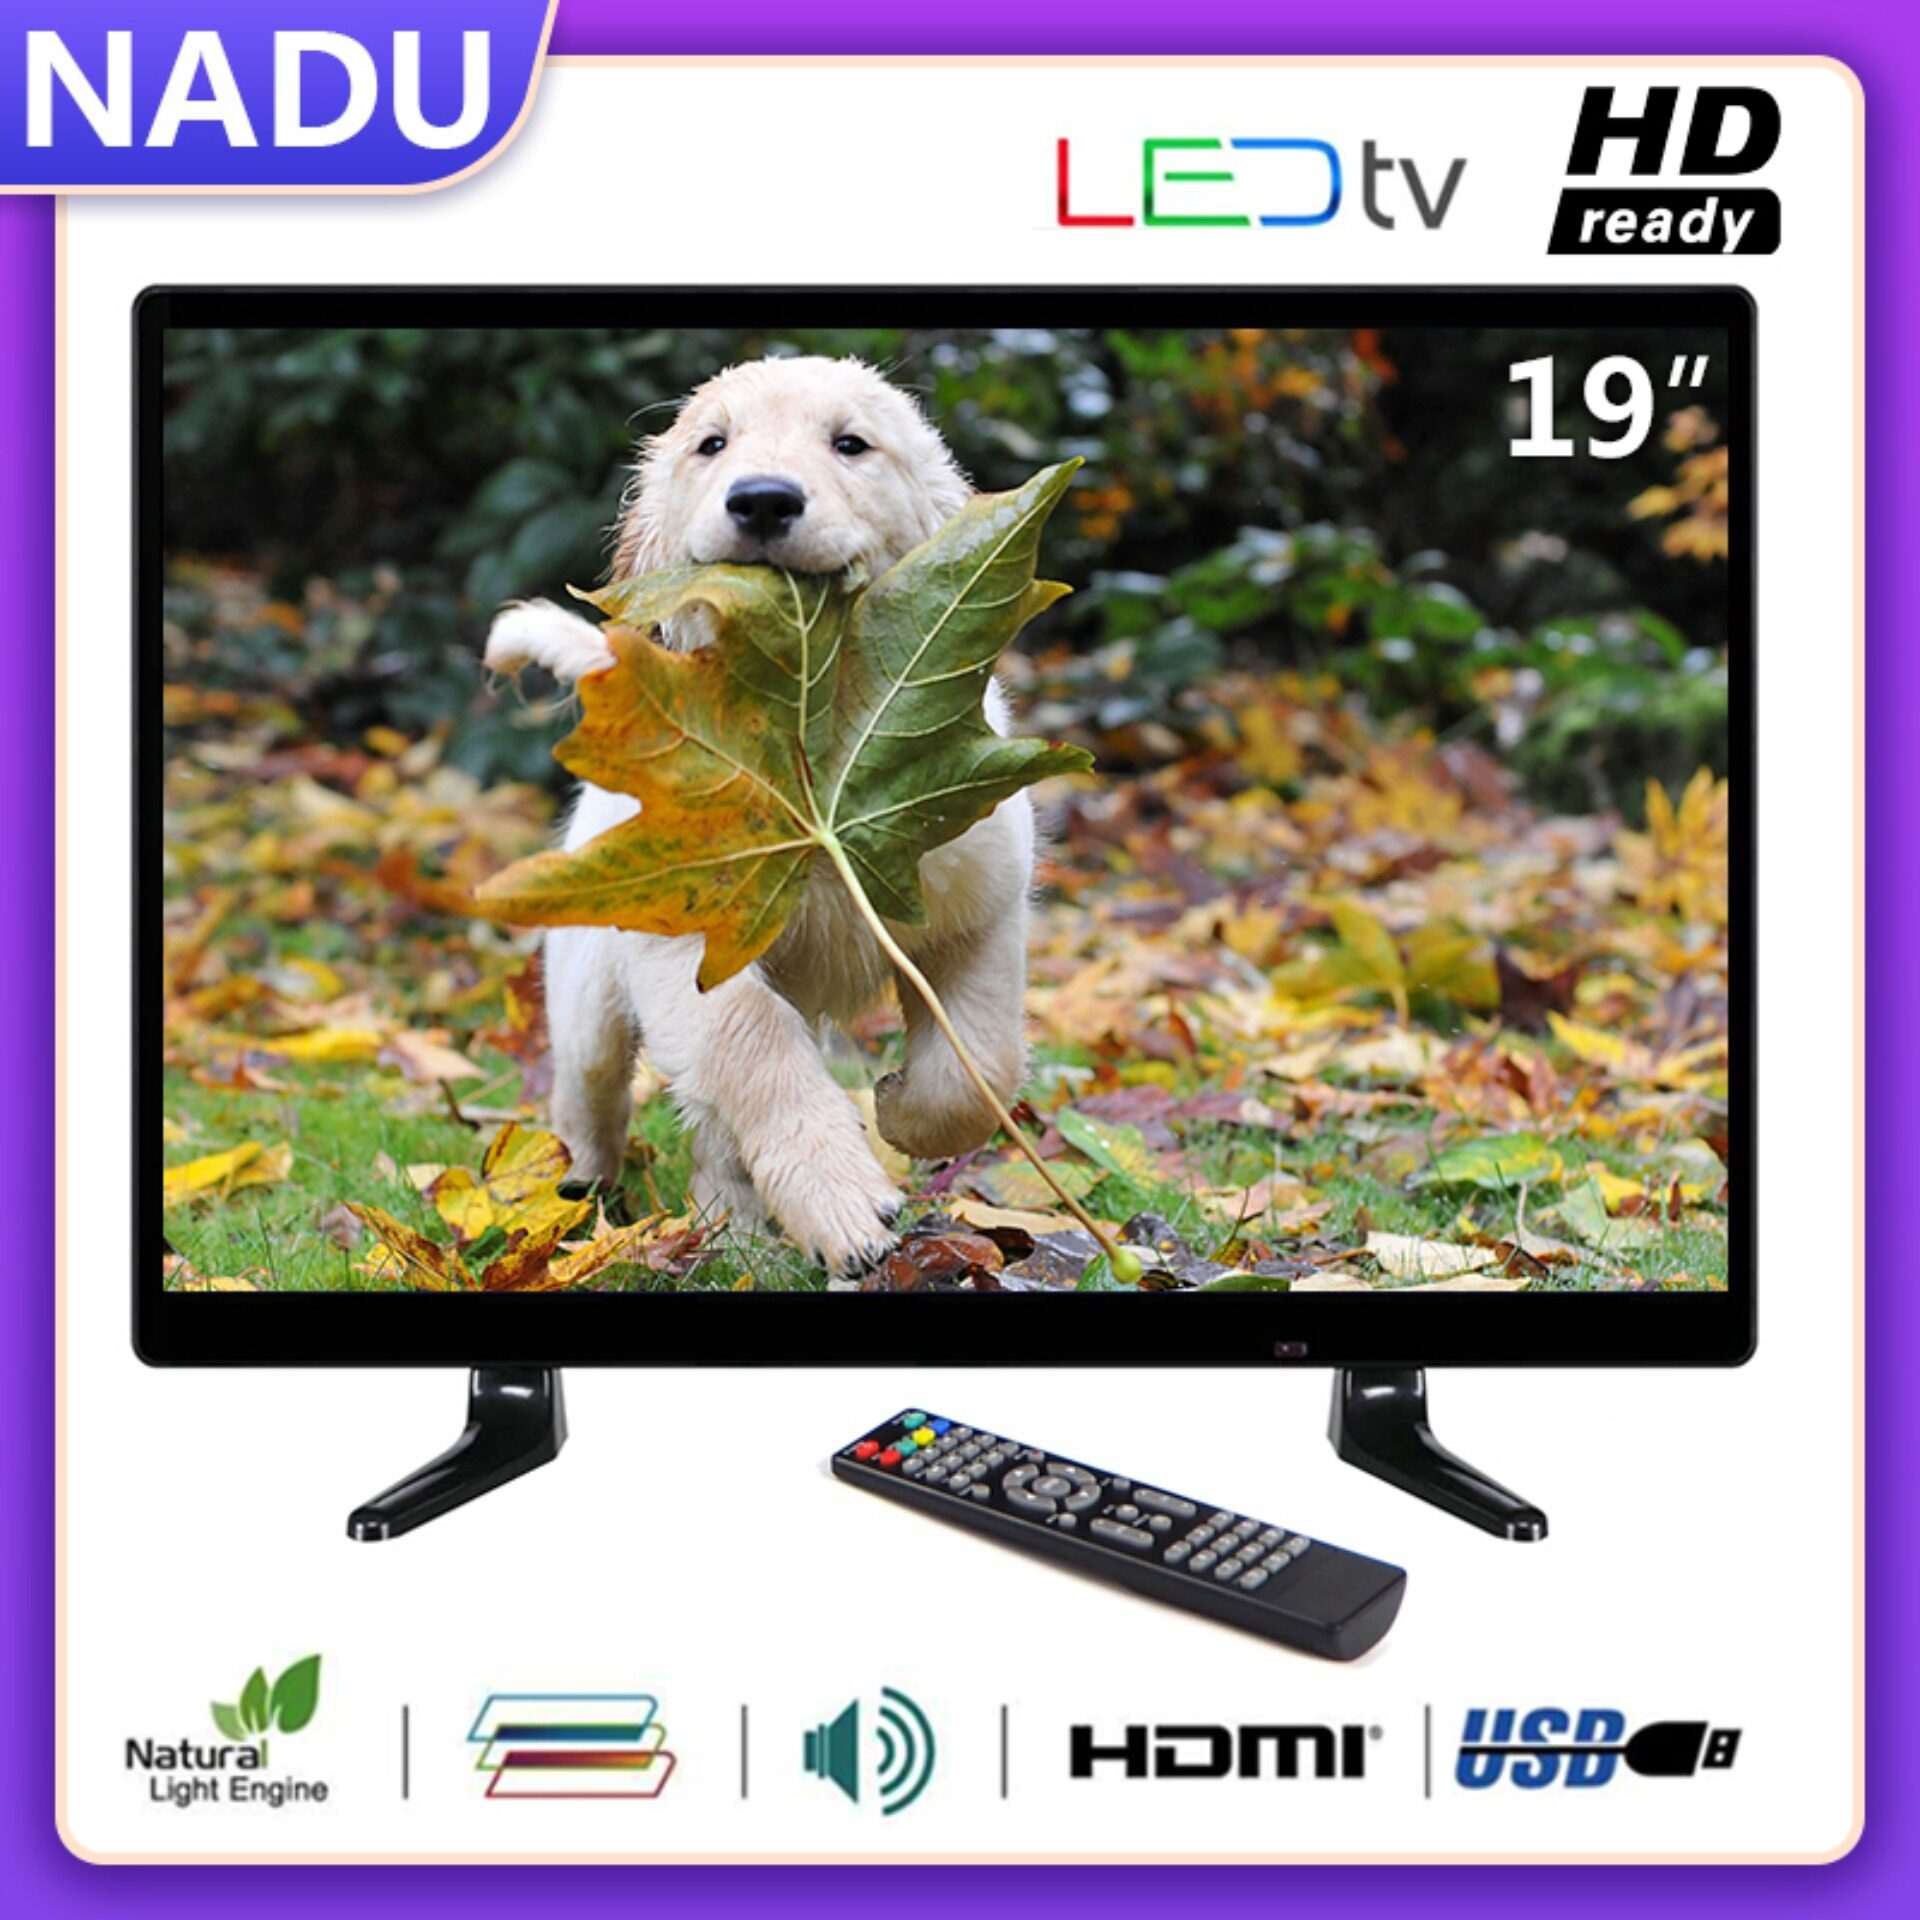 (big Sales) Nadu ทีวีราคาถูก 19 Inches Led  Hd Ready Tv 1440*900  (tclg19a).